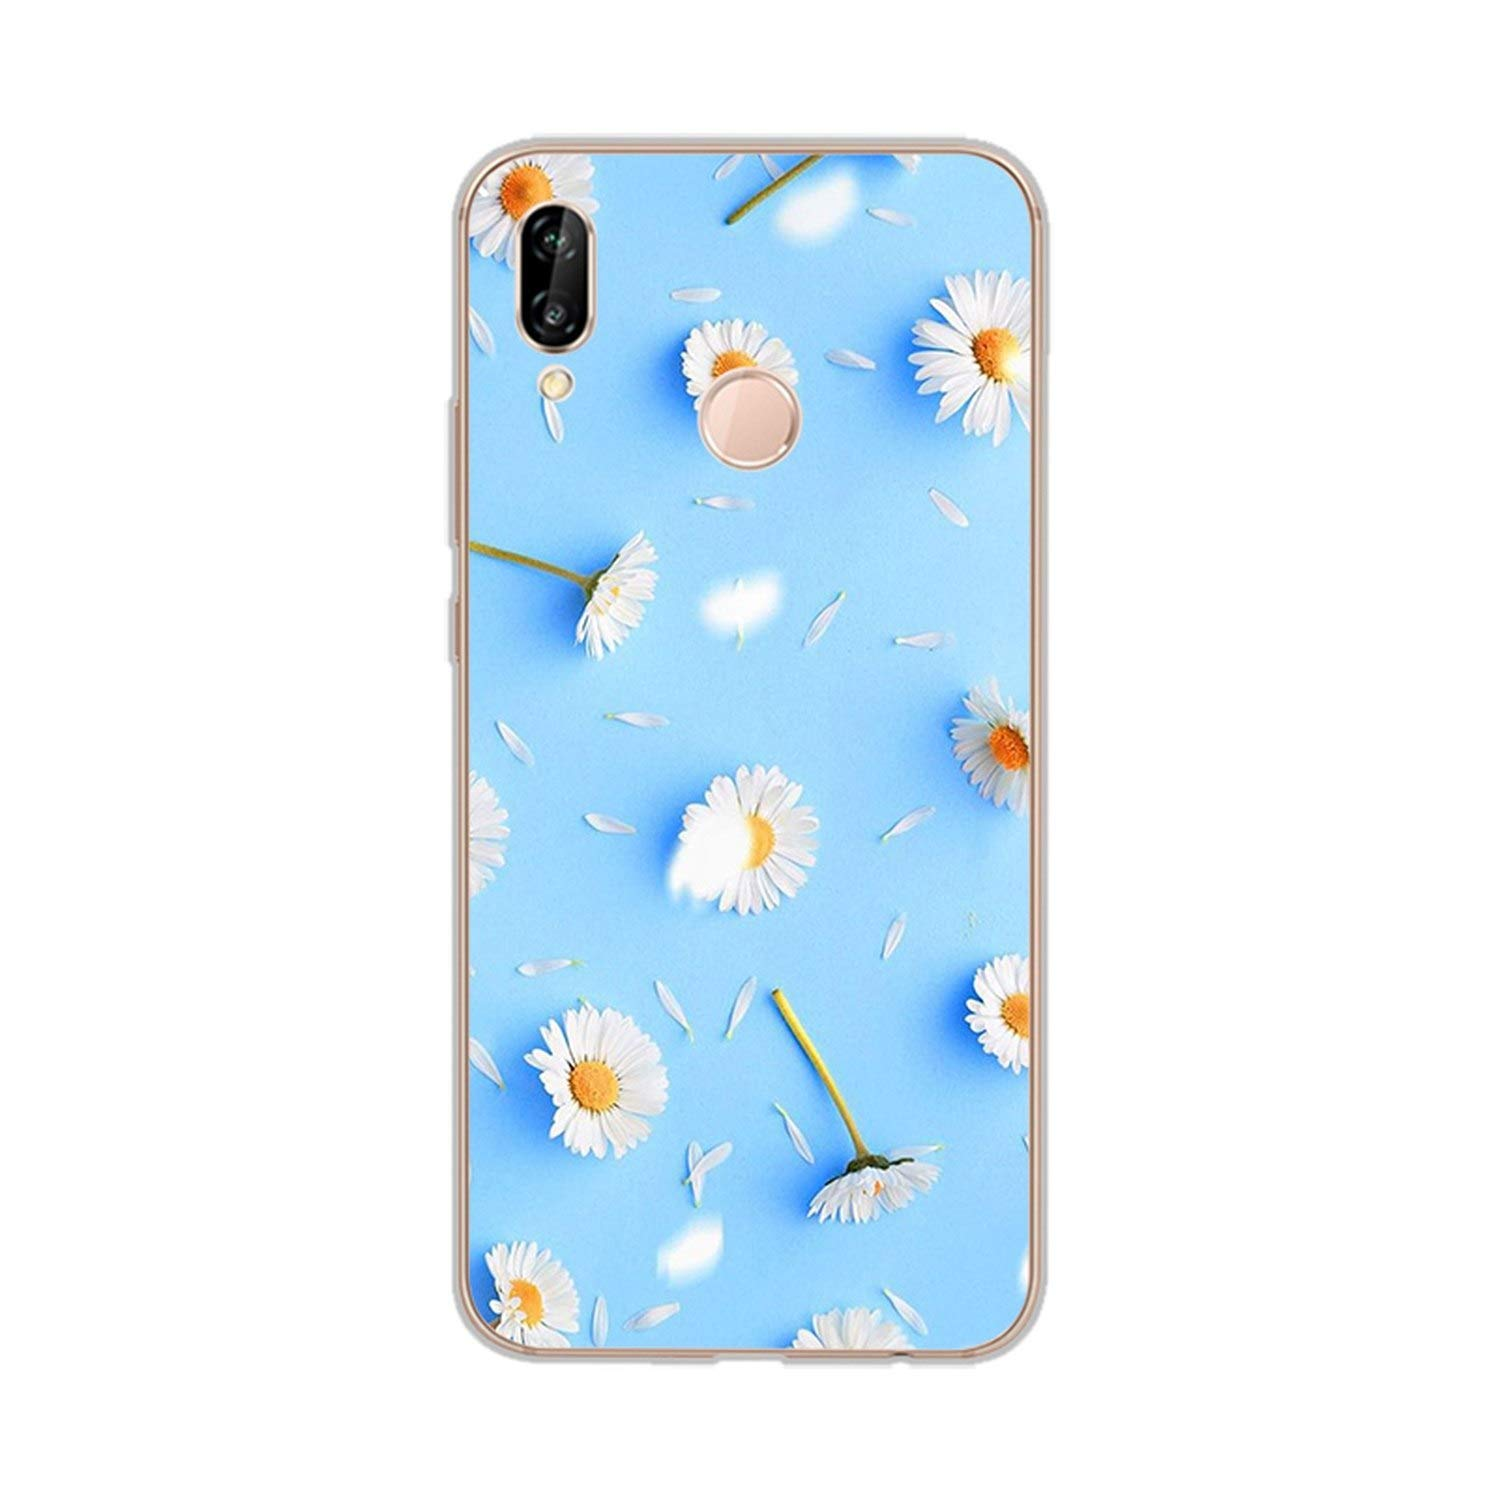 Amazon.com: Phone Cases for Huawei P20 P8 P9 P10 Mate 20 10 ...